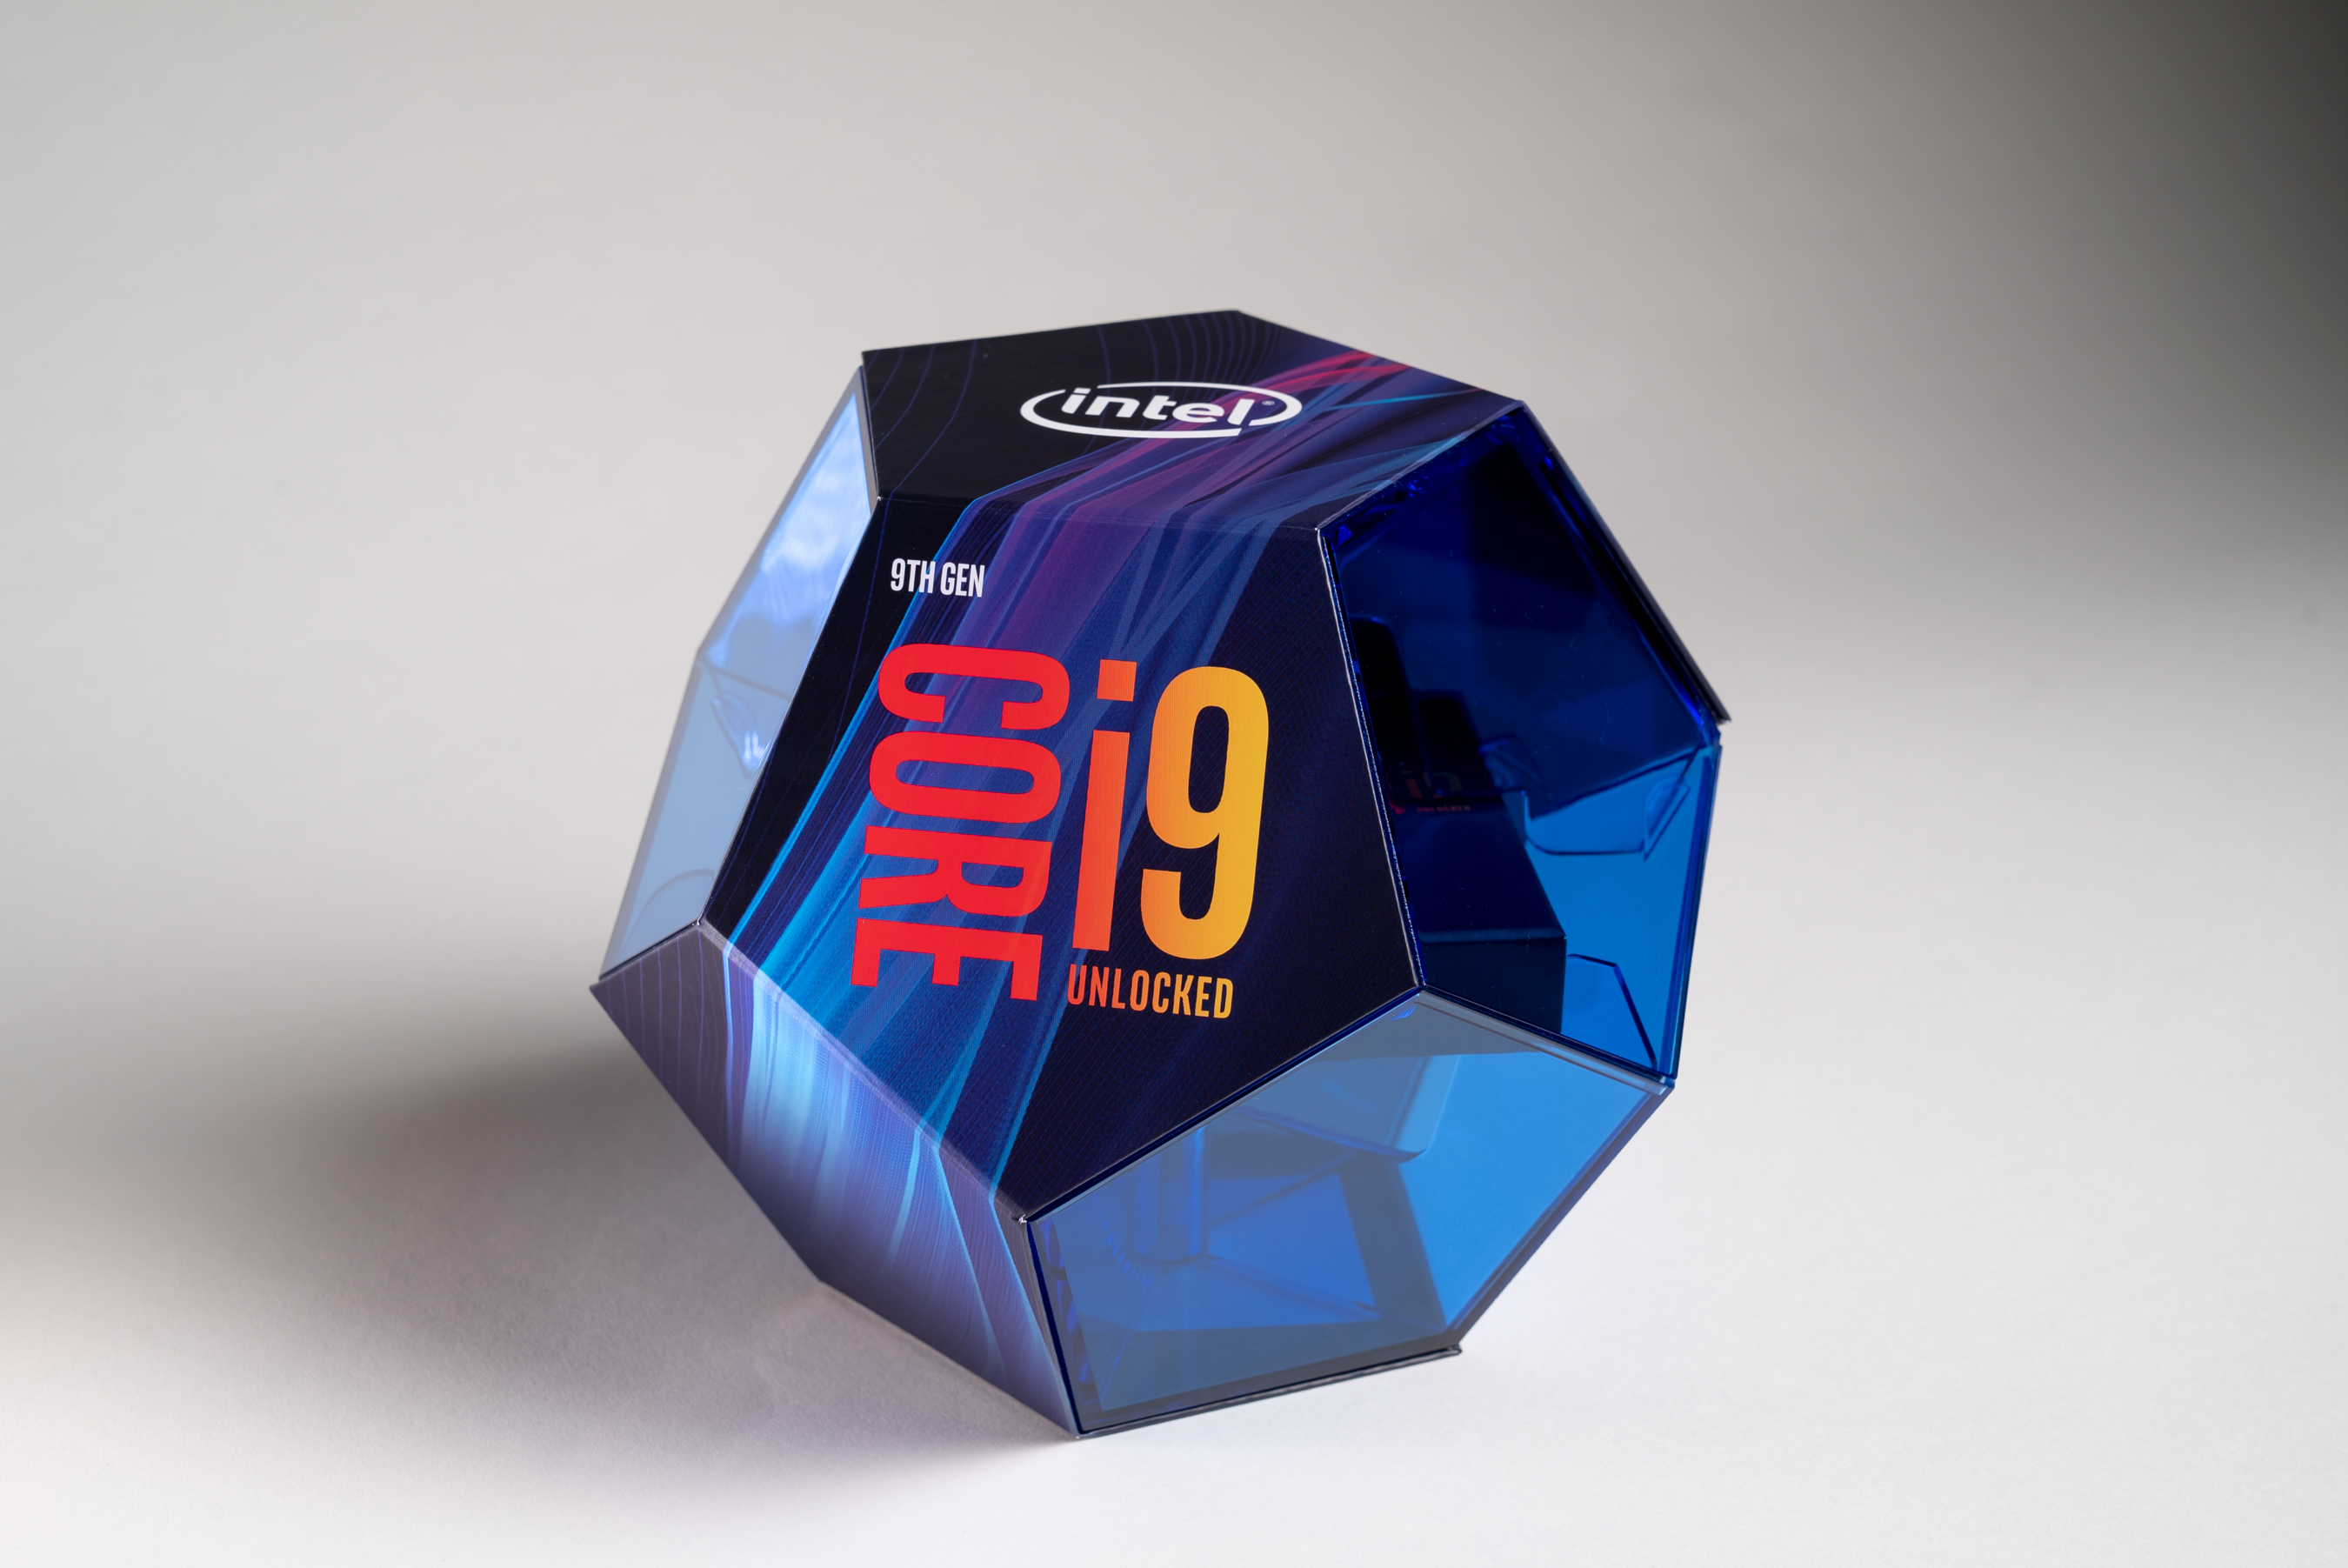 The 9th-generation Core i9 parts will come in a fancy-looking dodecahedron box.